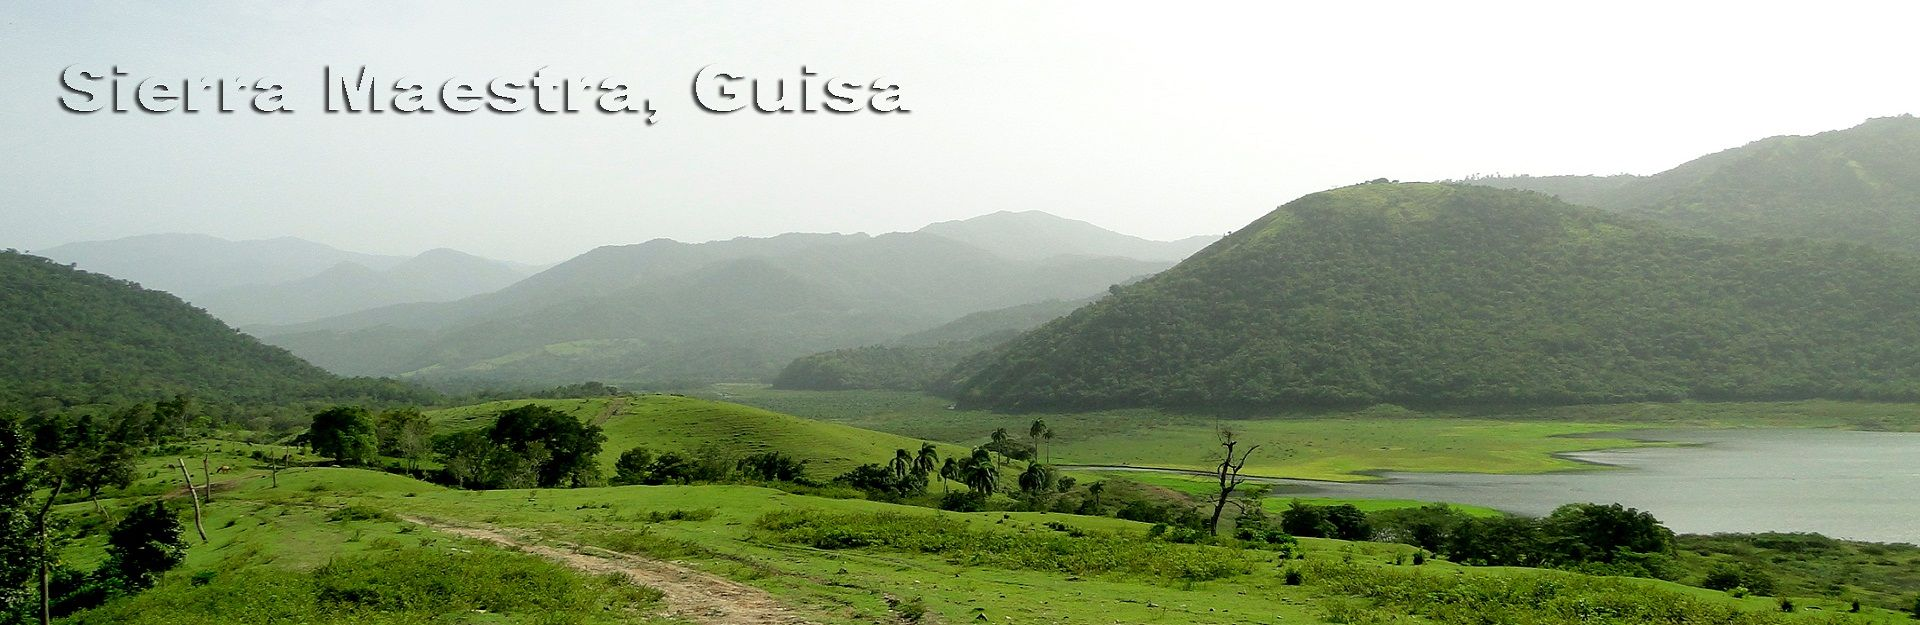 Landscape of the Sierra Maestra, Guisa, Granma, Cuba Travel